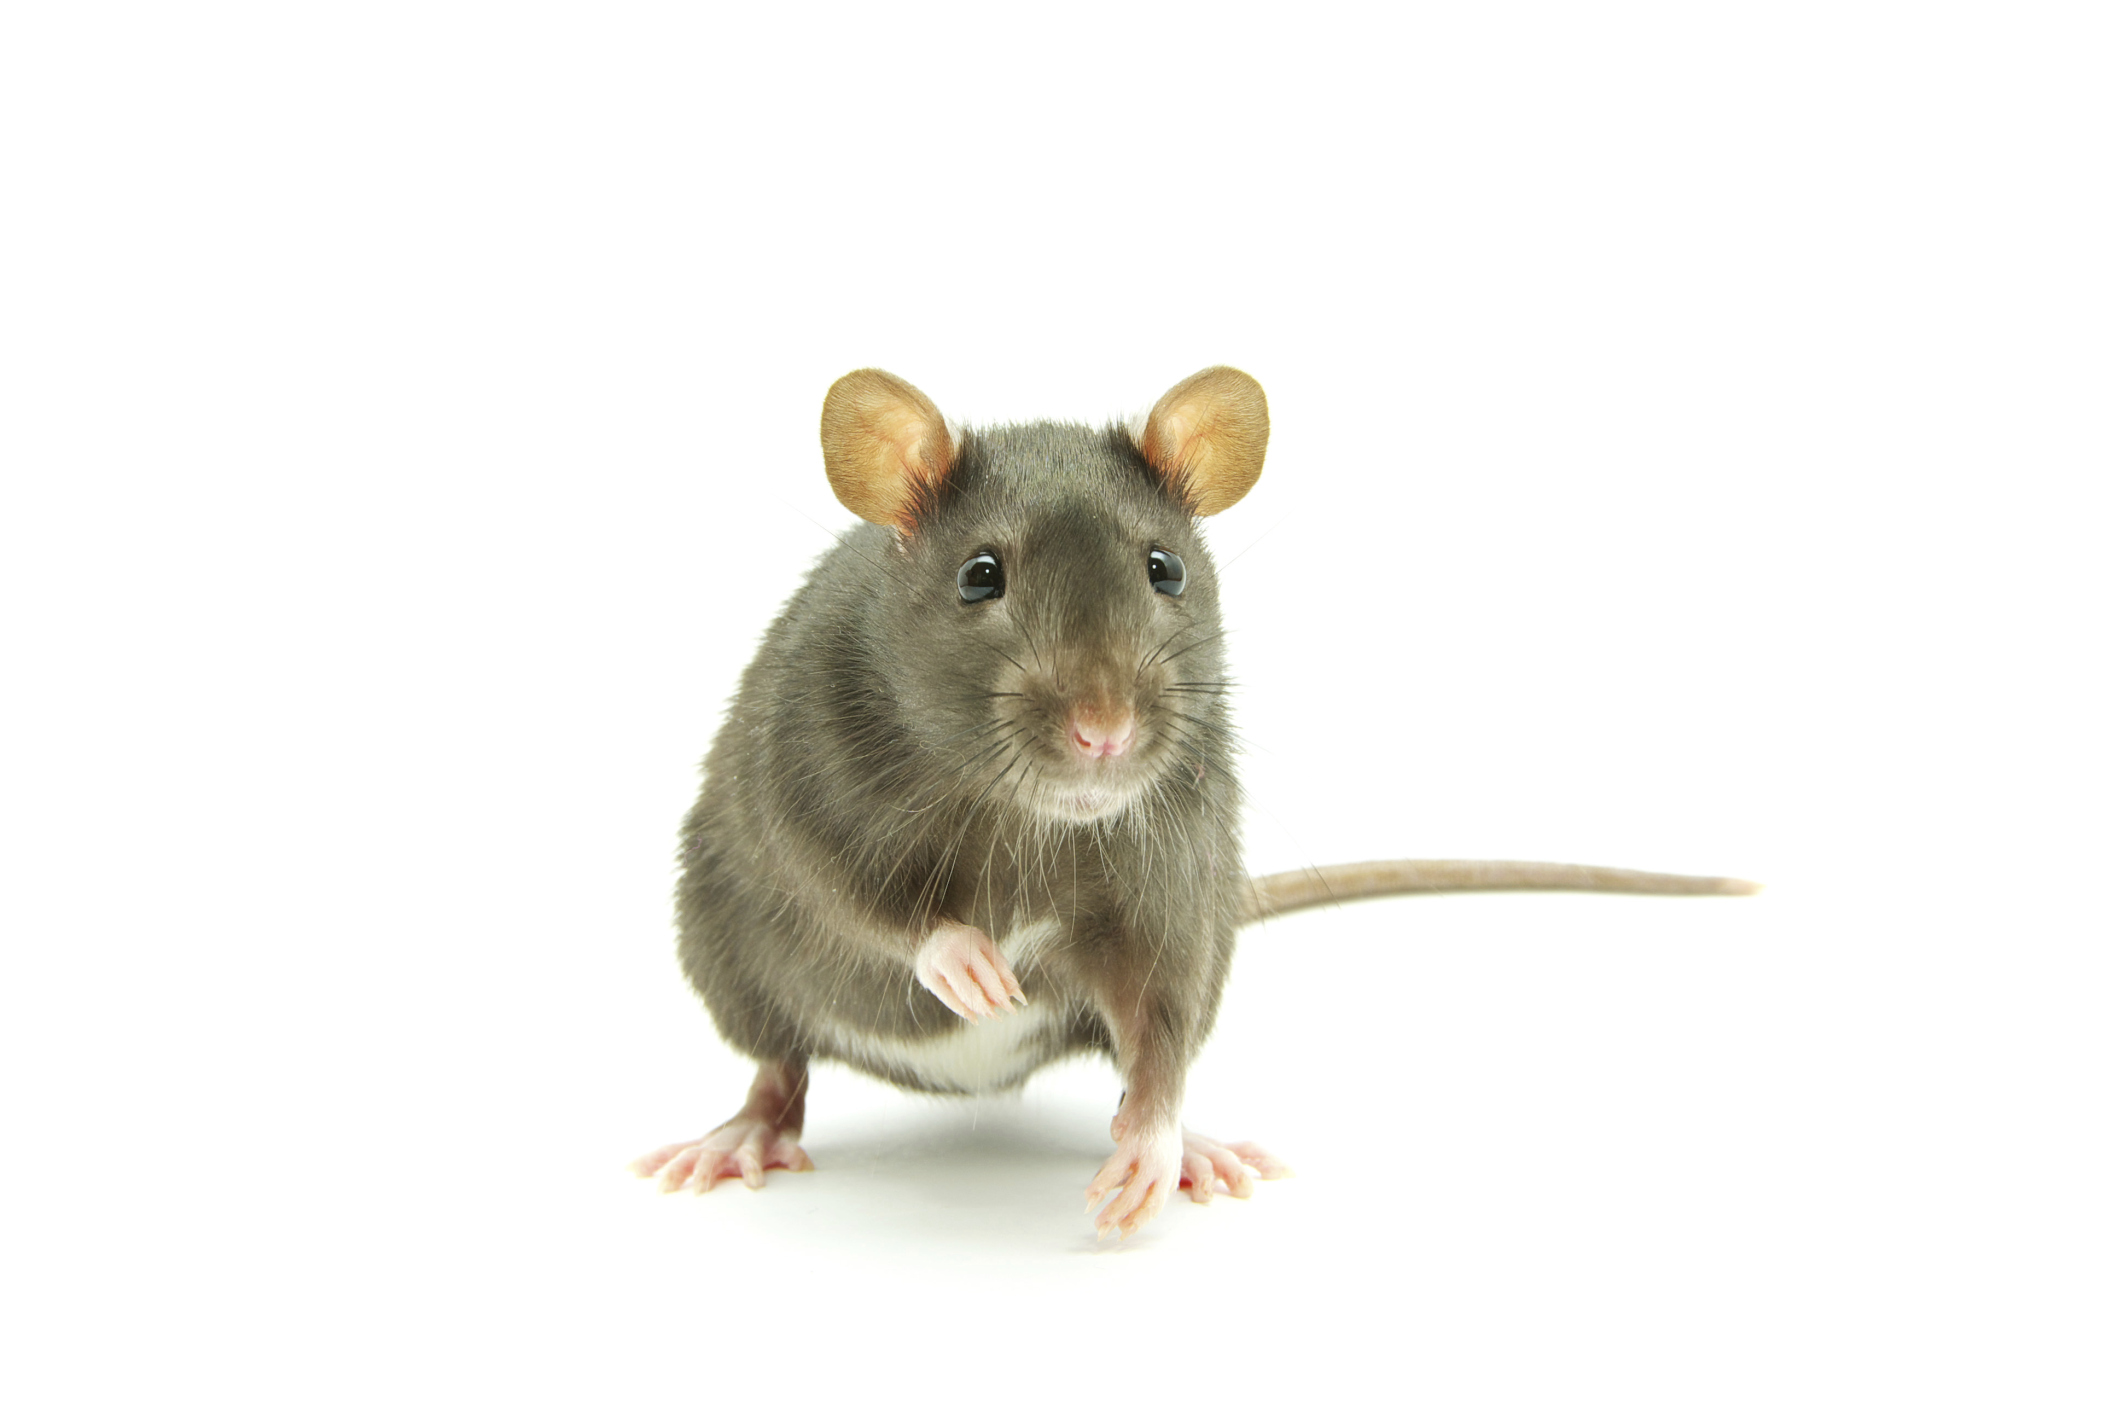 How Do I Get Rid of Rats In My Home? - PestGone